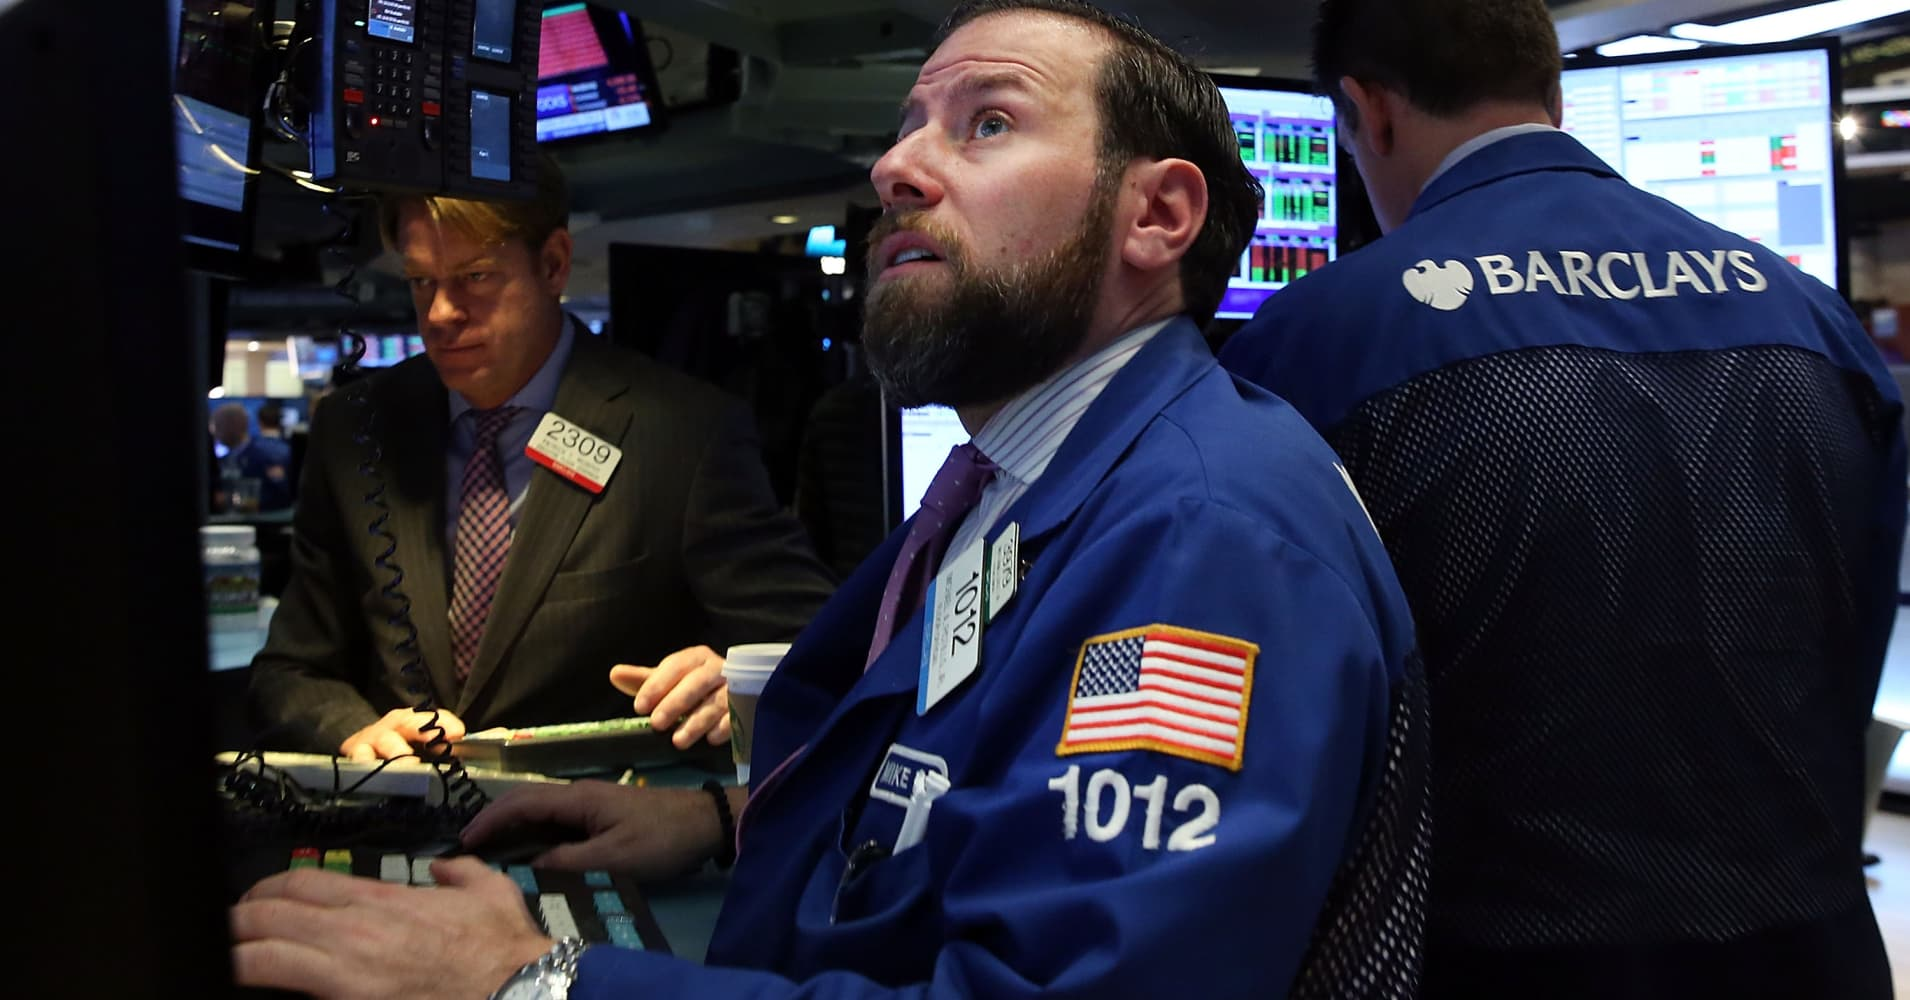 S&P 500 falls after bank shares drop; Dow decline led by Disney after profit warning